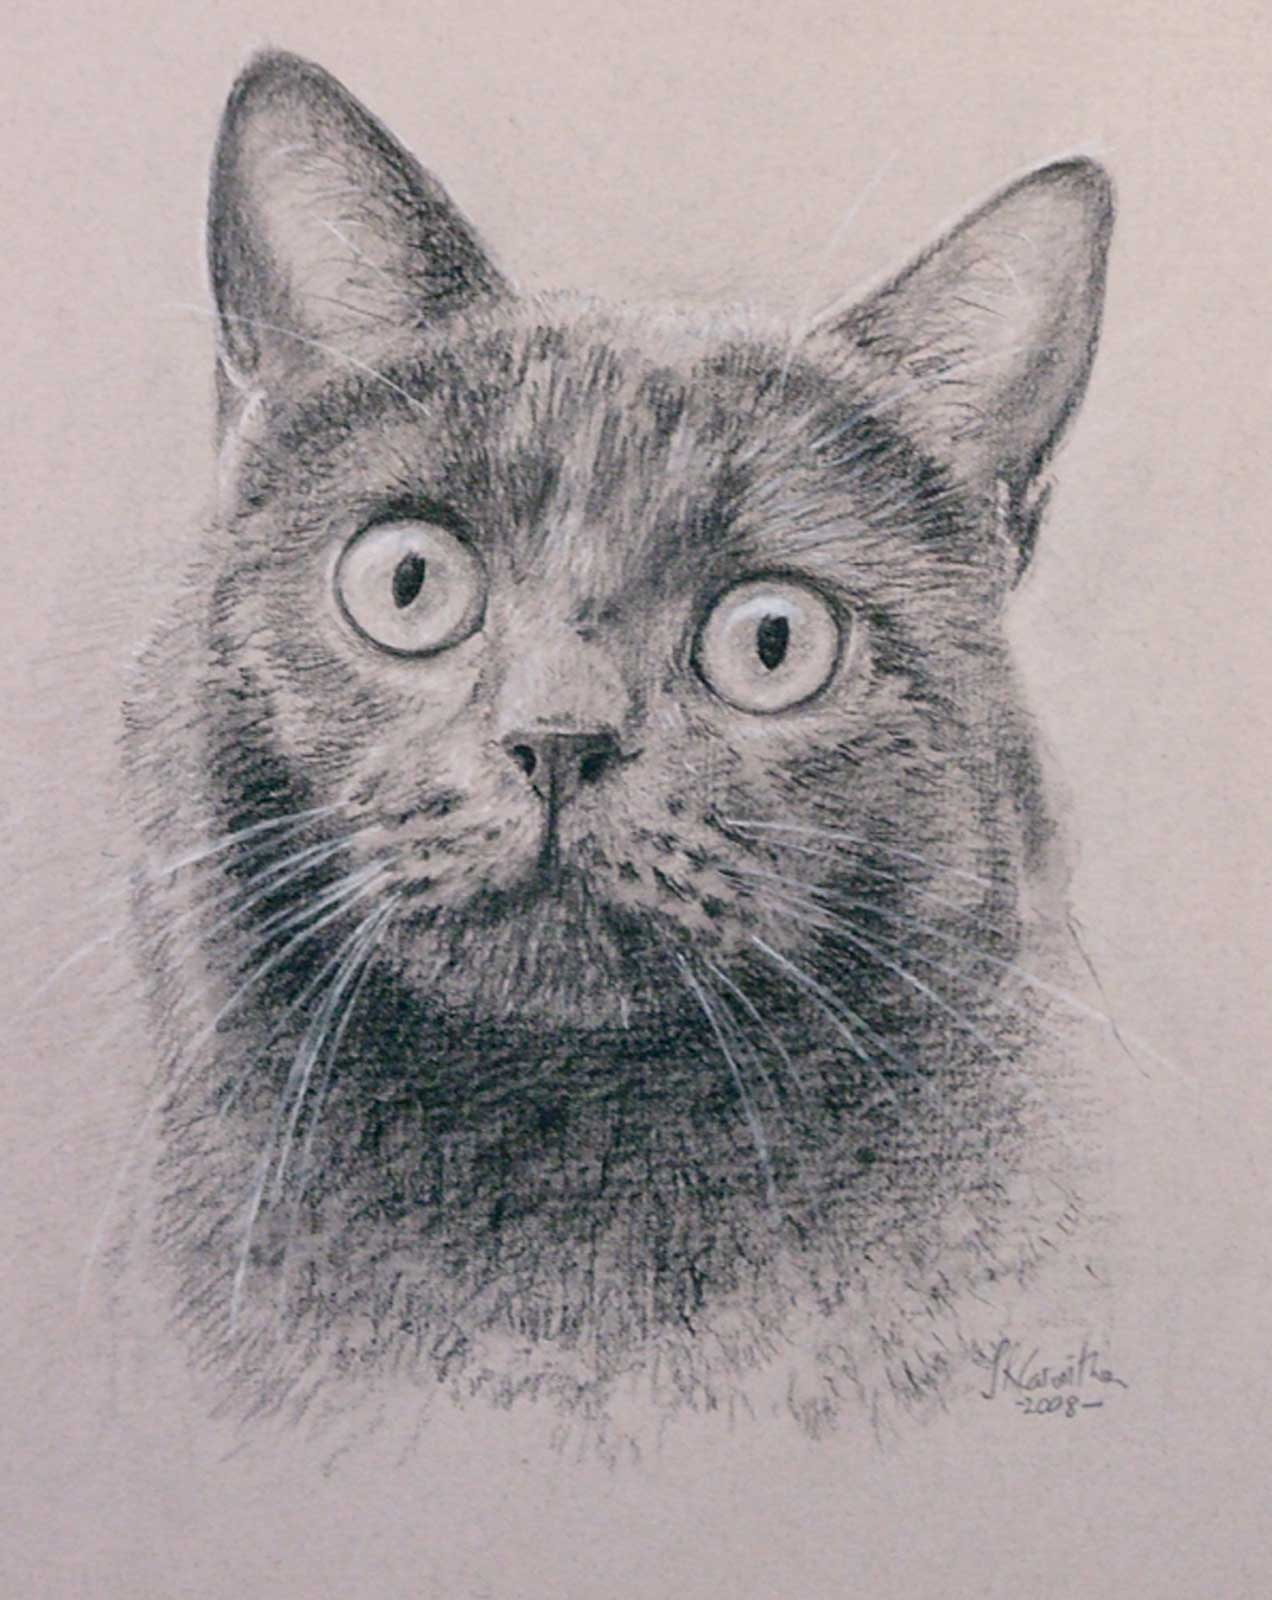 Cat portrait, drawing on paper